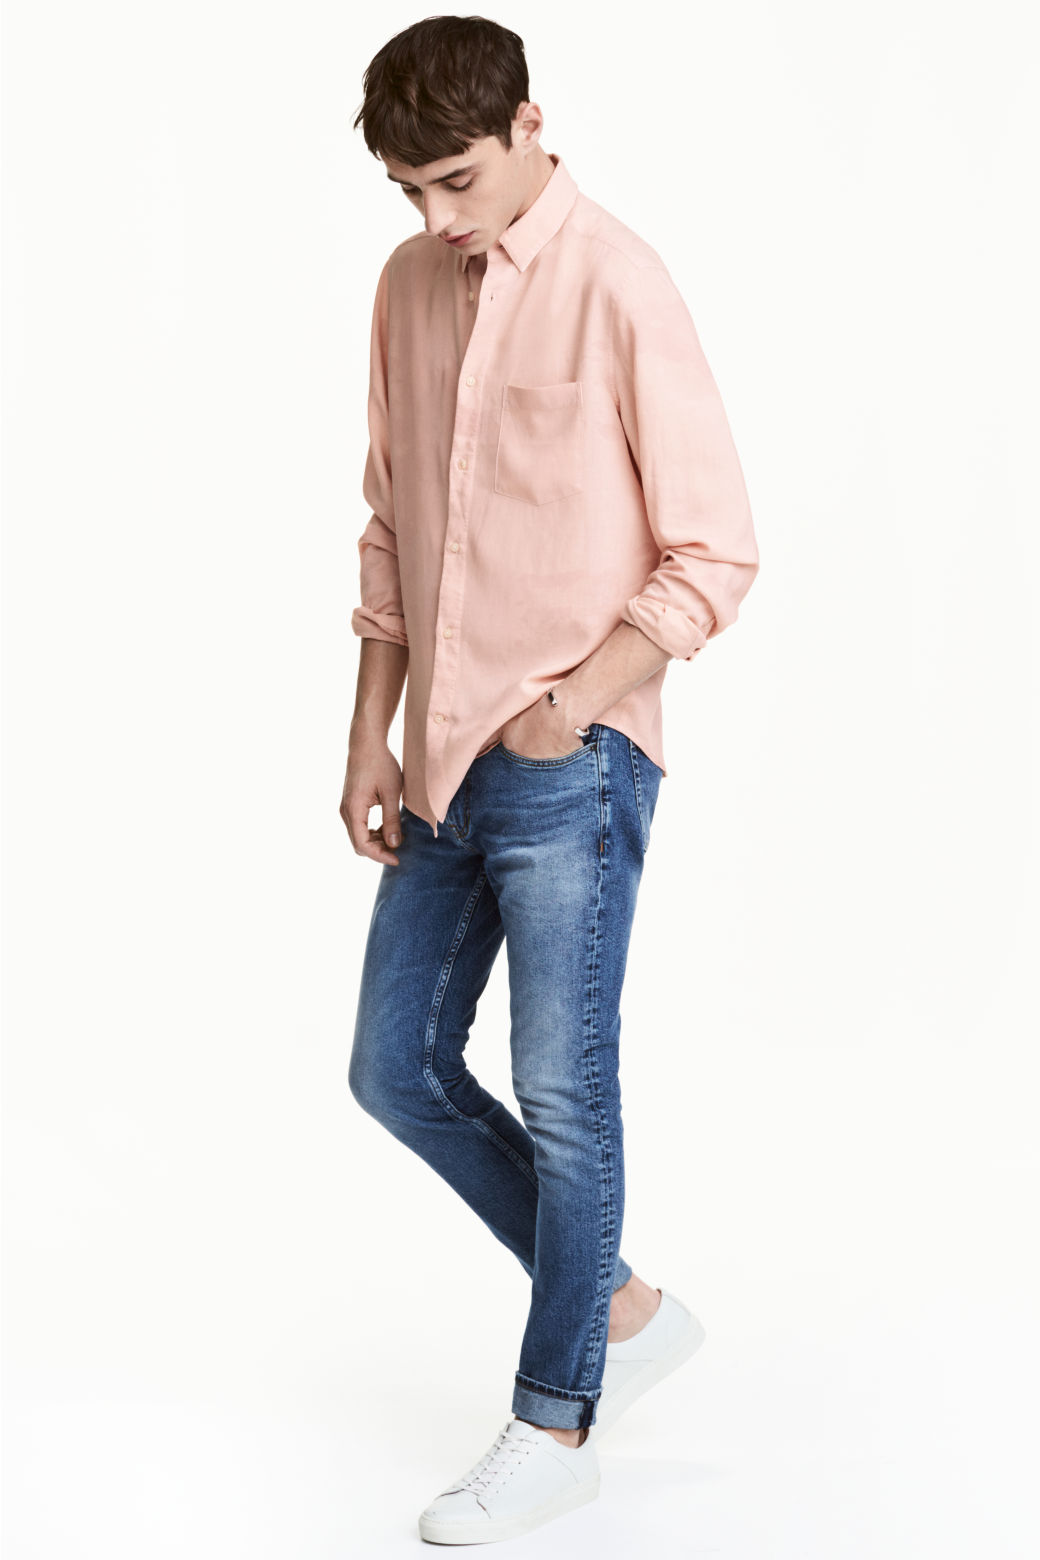 H&M's business concept is to offer fashion and quality at the best price. H&M has since it was founded in grown into one of the world's leading fashion companies. The content of this site is copyright-protected and is the property of H&M Hennes & Mauritz AB. H&M is committed to accessibility.